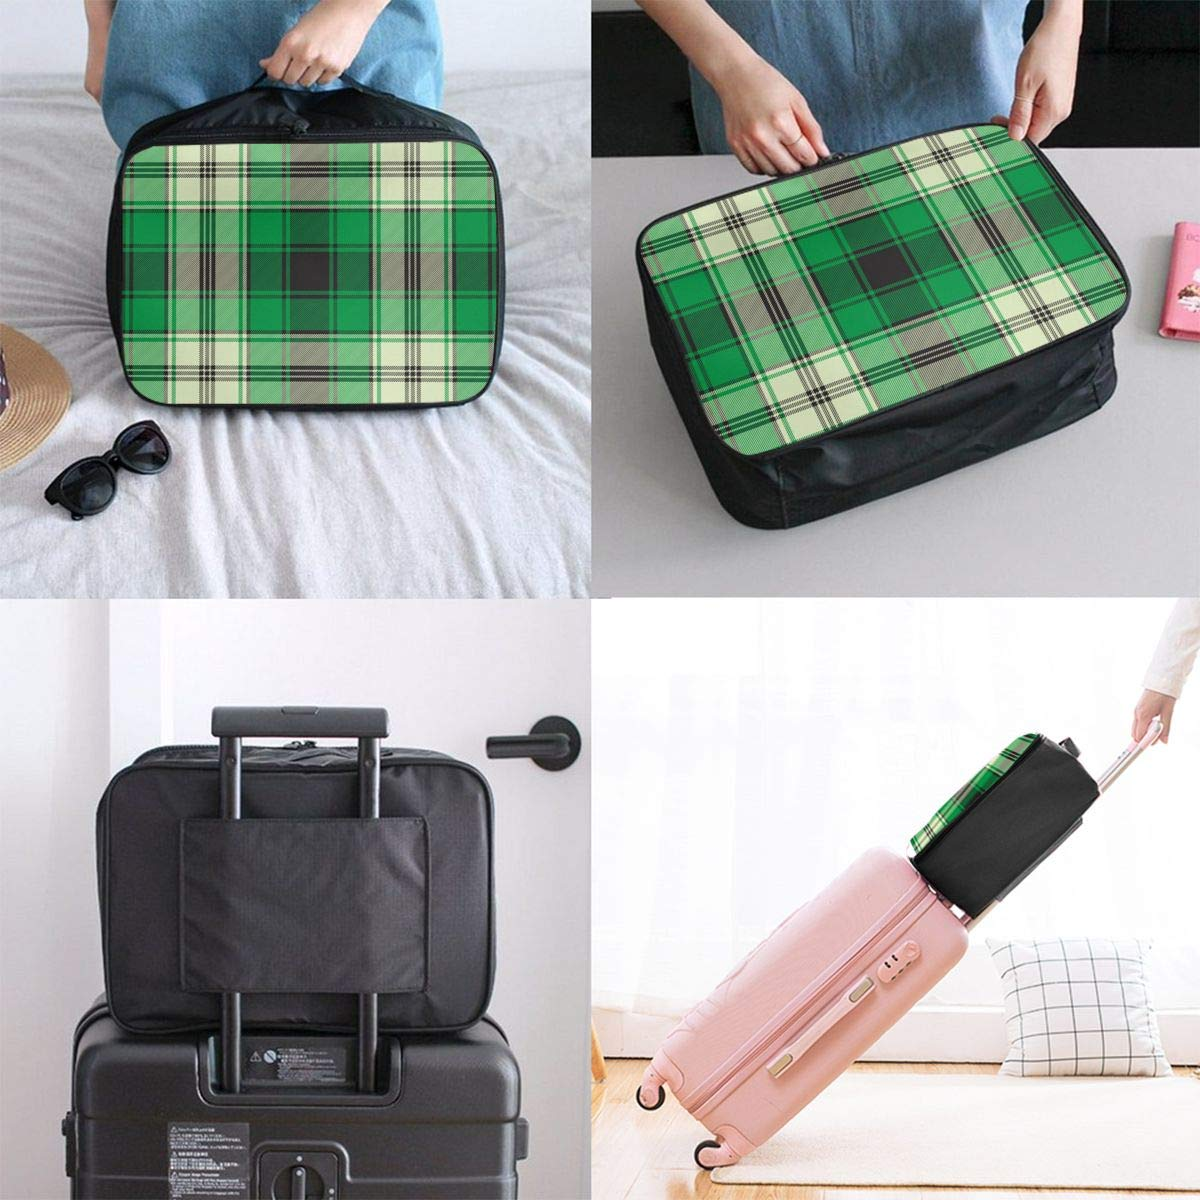 ADGAI Green Check Plaid Seamless Fabric Texture Canvas Travel Weekender Bag,Fashion Custom Lightweight Large Capacity Portable Luggage Bag,Suitcase Trolley Bag